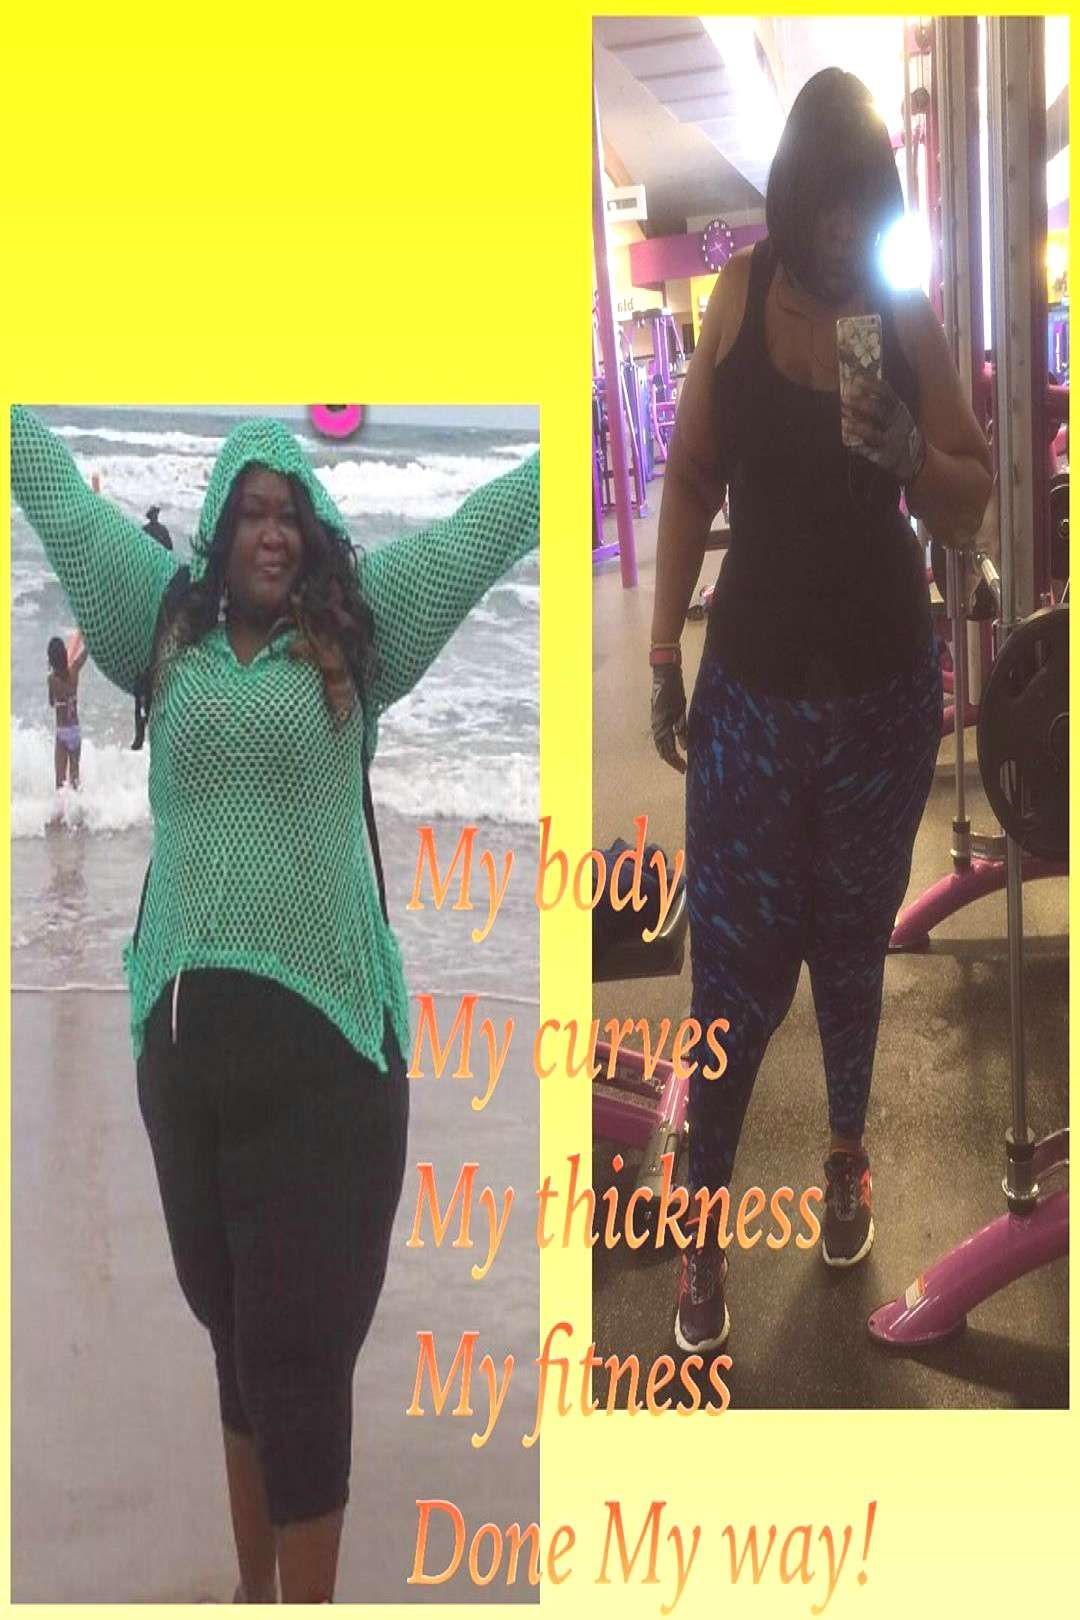 #personstandingpossible #thickness #fitness #curves #matter #wanted #takes #text #body #have #that #...